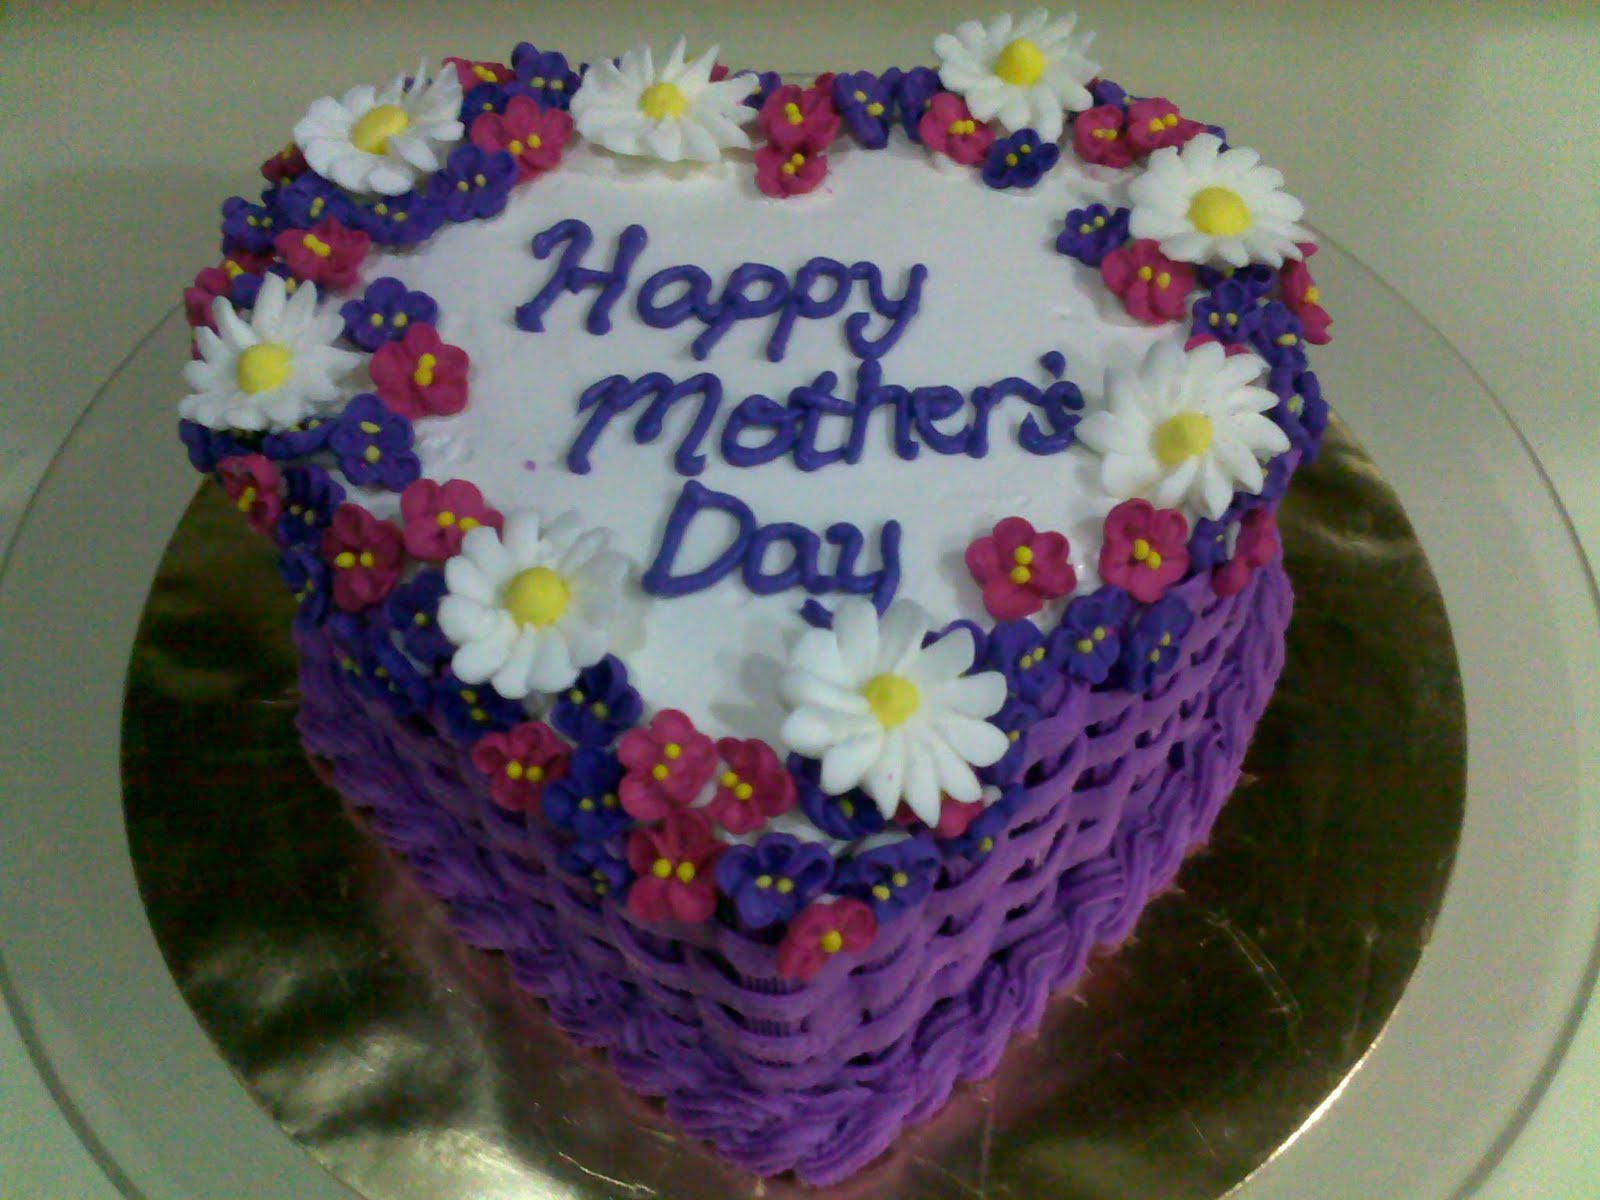 Cake Decorations For Mother S Birthday : Delightful Mother s Day Cake Ideas jareceqyk